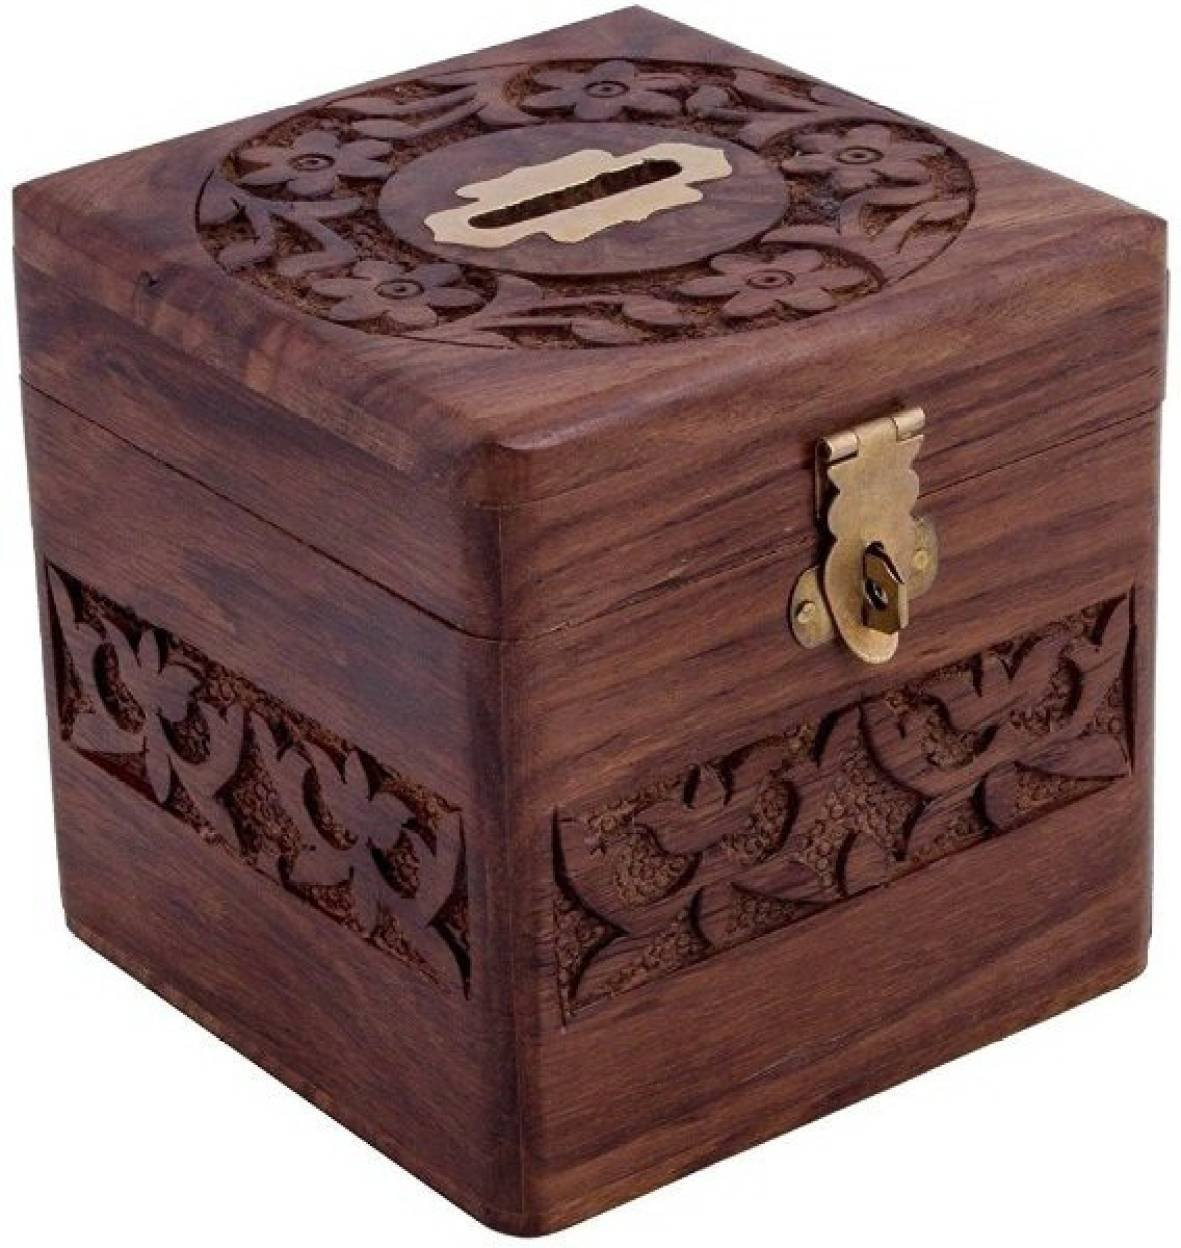 Crafts'man Beautiful Indian Handmade Wooden Money Bank in Square Shape 4x4 inch by Vian Crafts'man VIAN0198